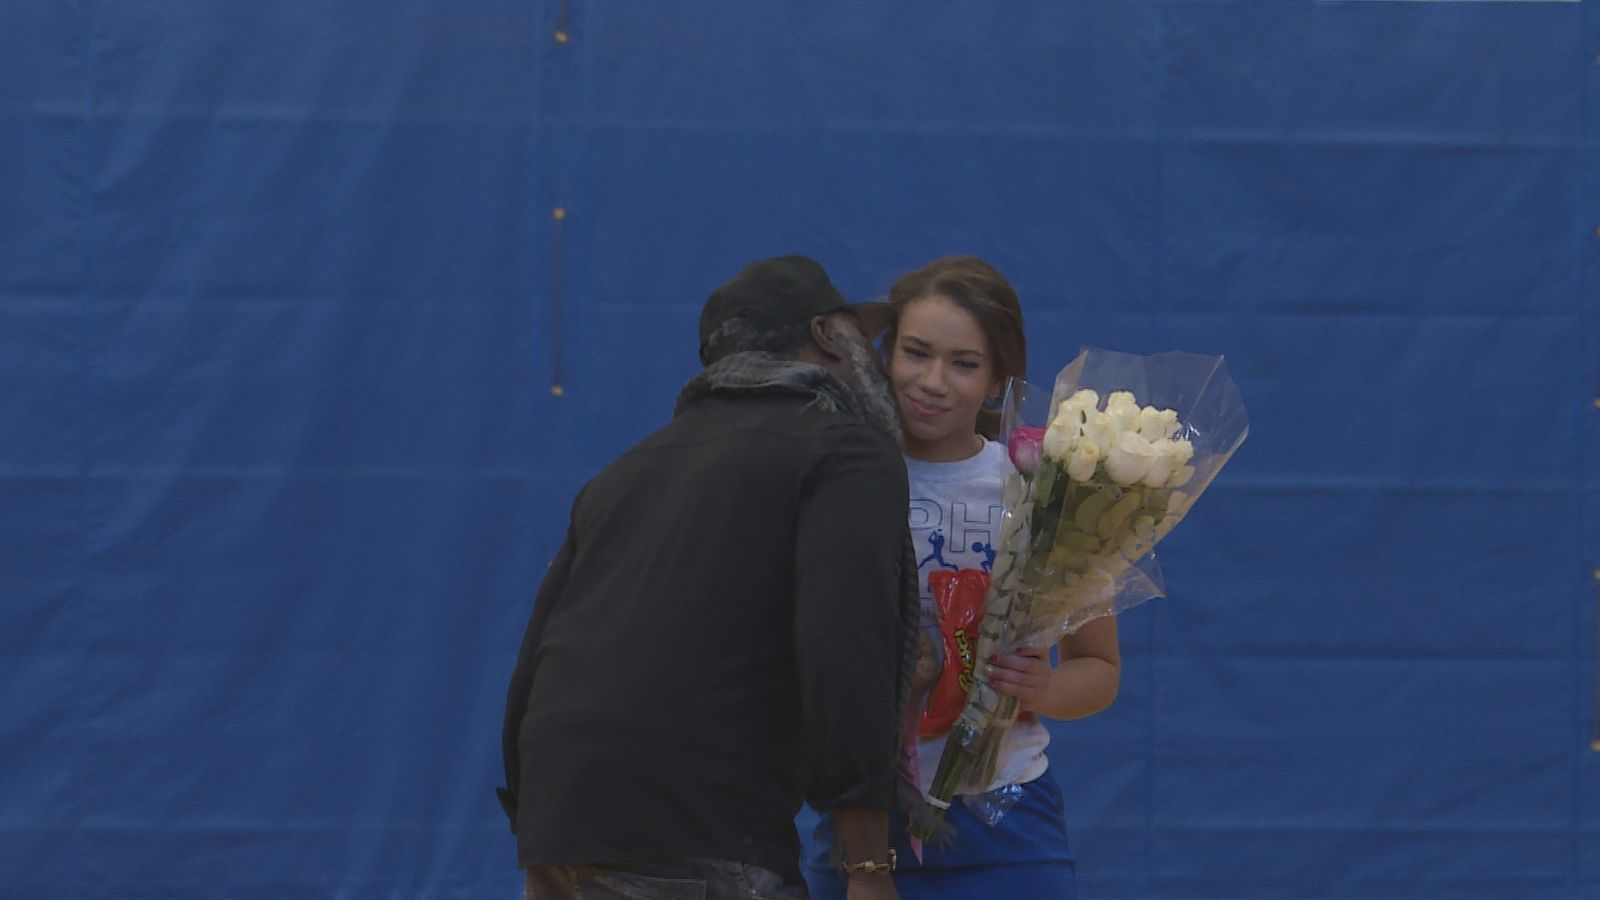 Rodney says he was excited and nervous to surprise Nevaeh. (Carsyn Currier/News 10)